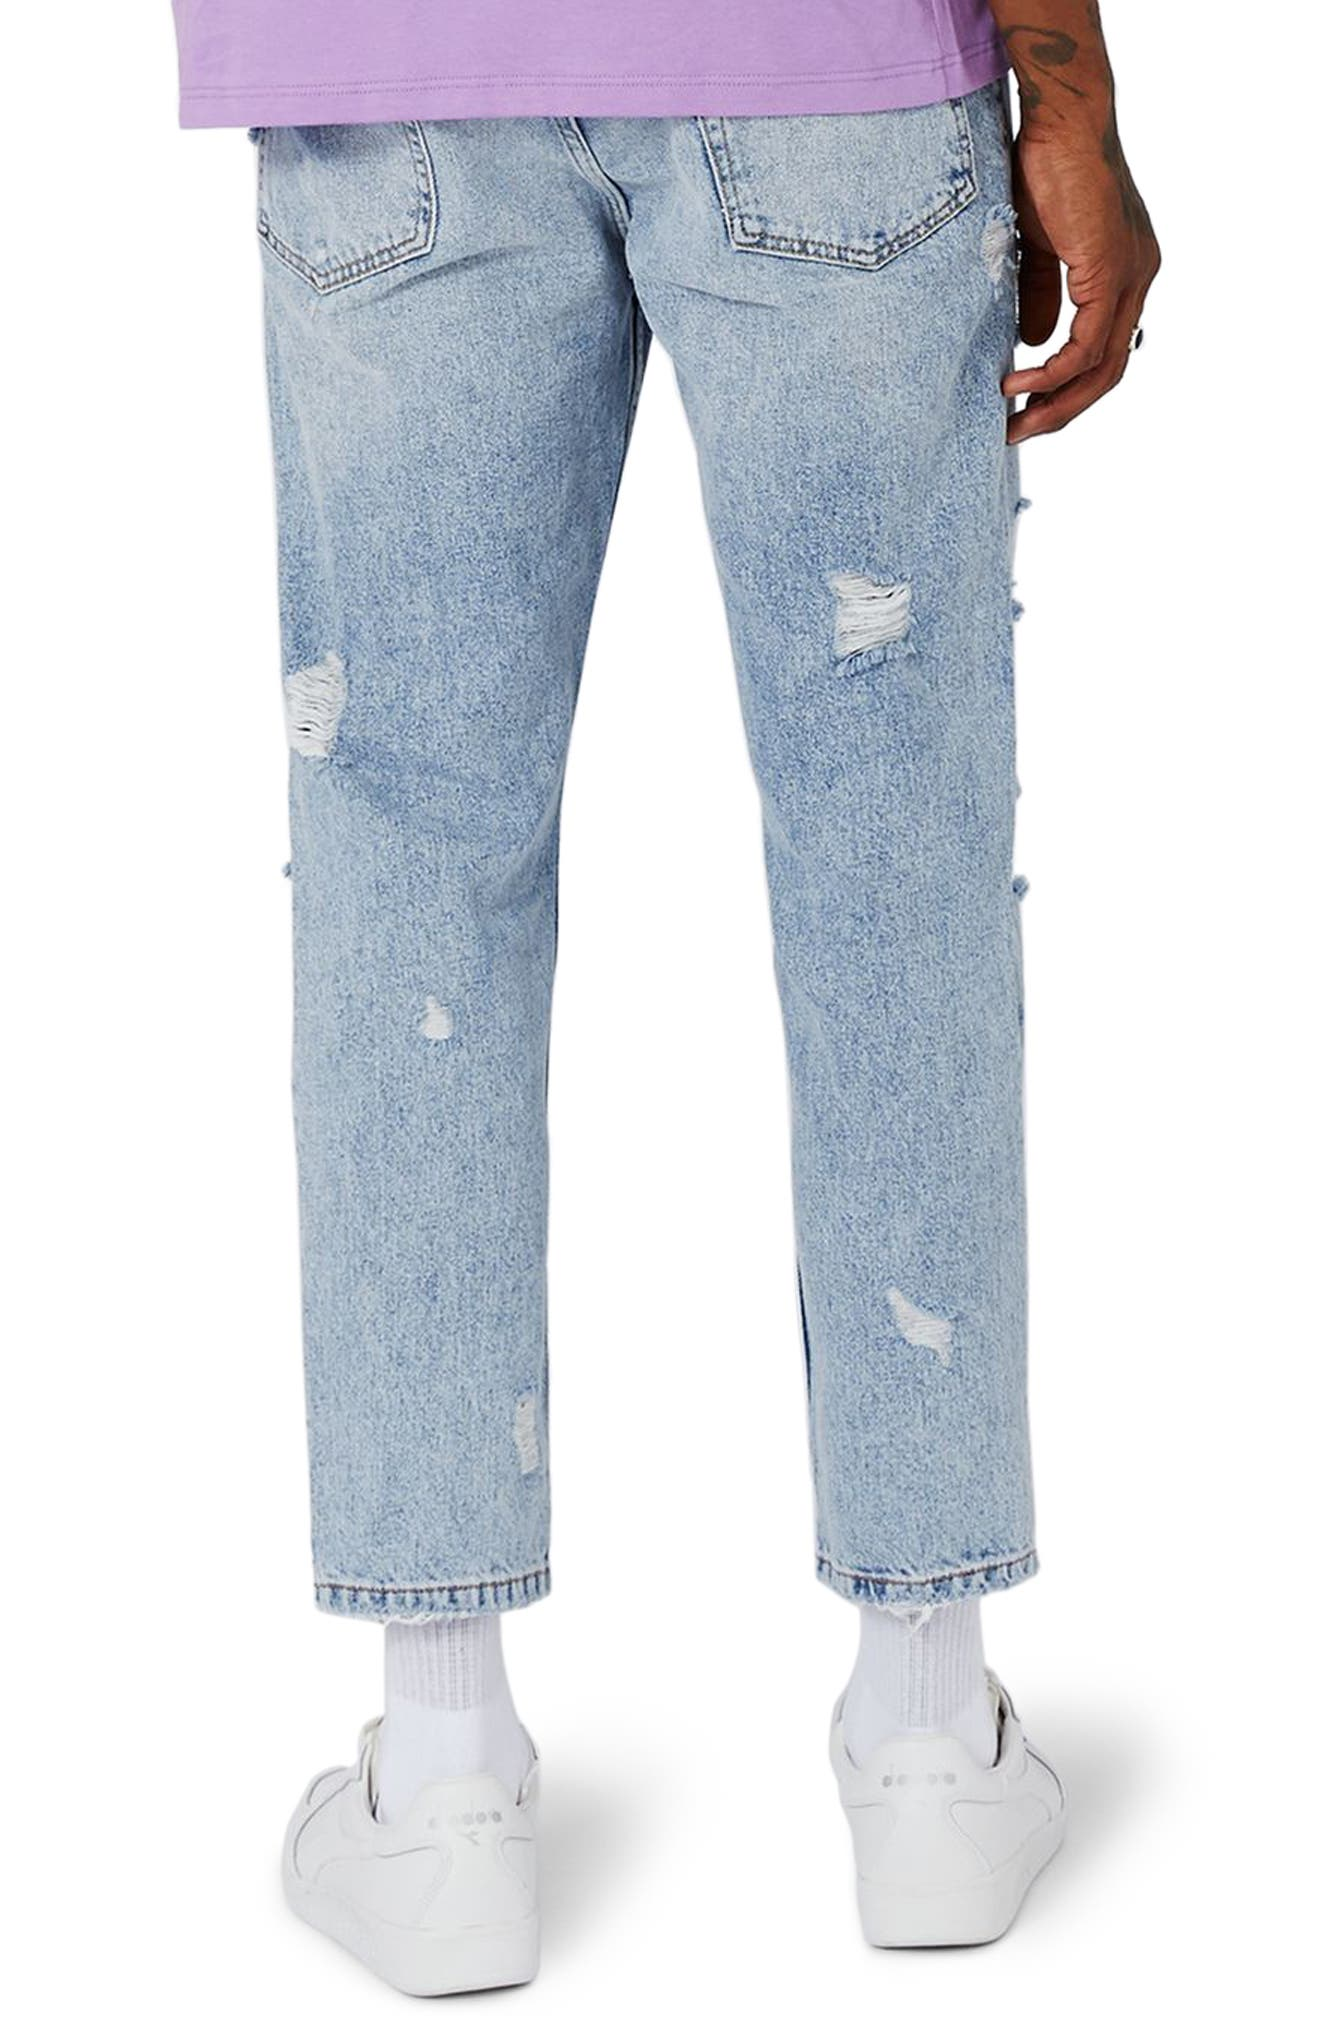 Topshop Extreme Rip Tapered Jeans,                             Alternate thumbnail 2, color,                             Light Blue